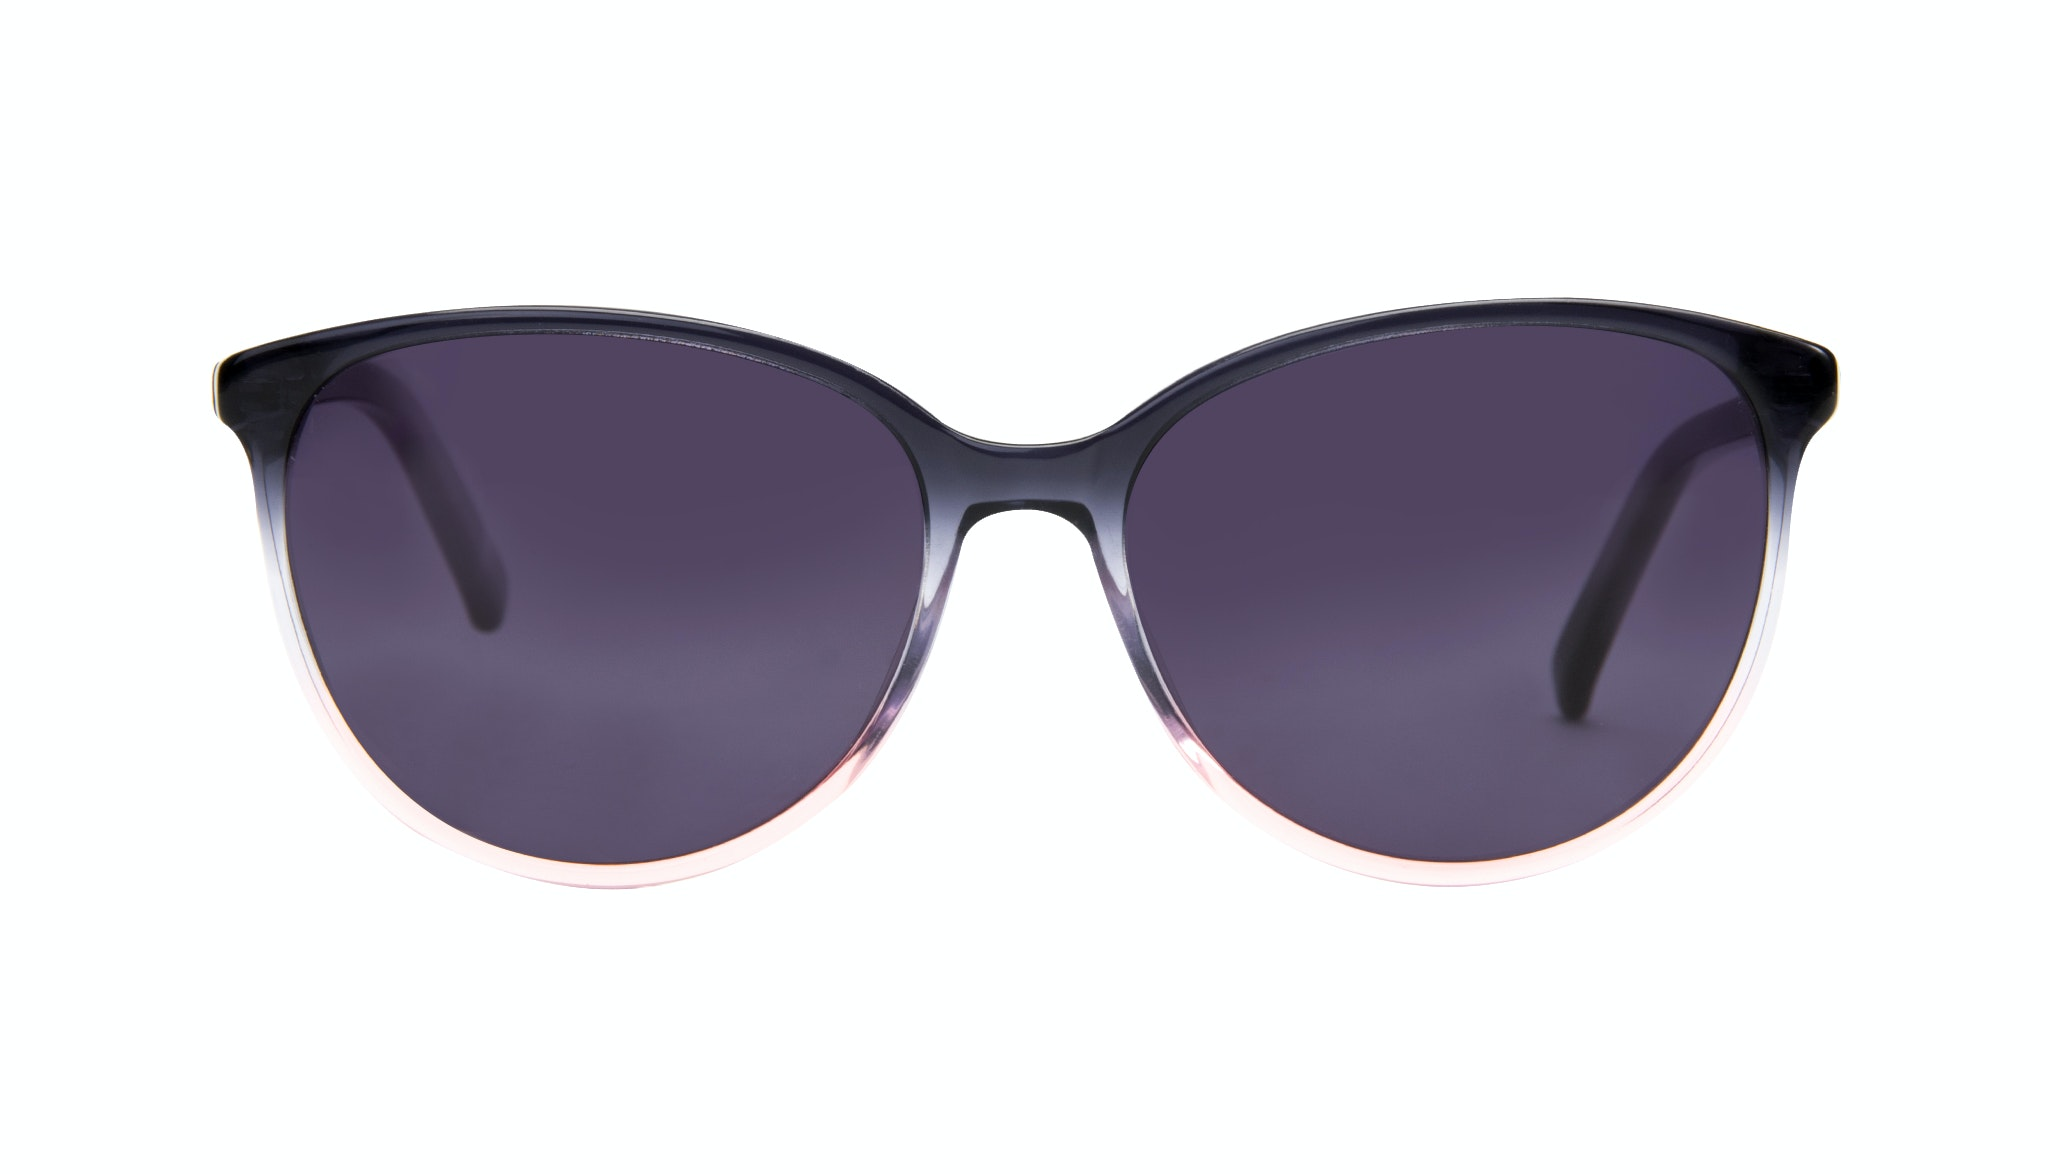 Affordable Fashion Glasses Round Sunglasses Women Imagine Pink Dust